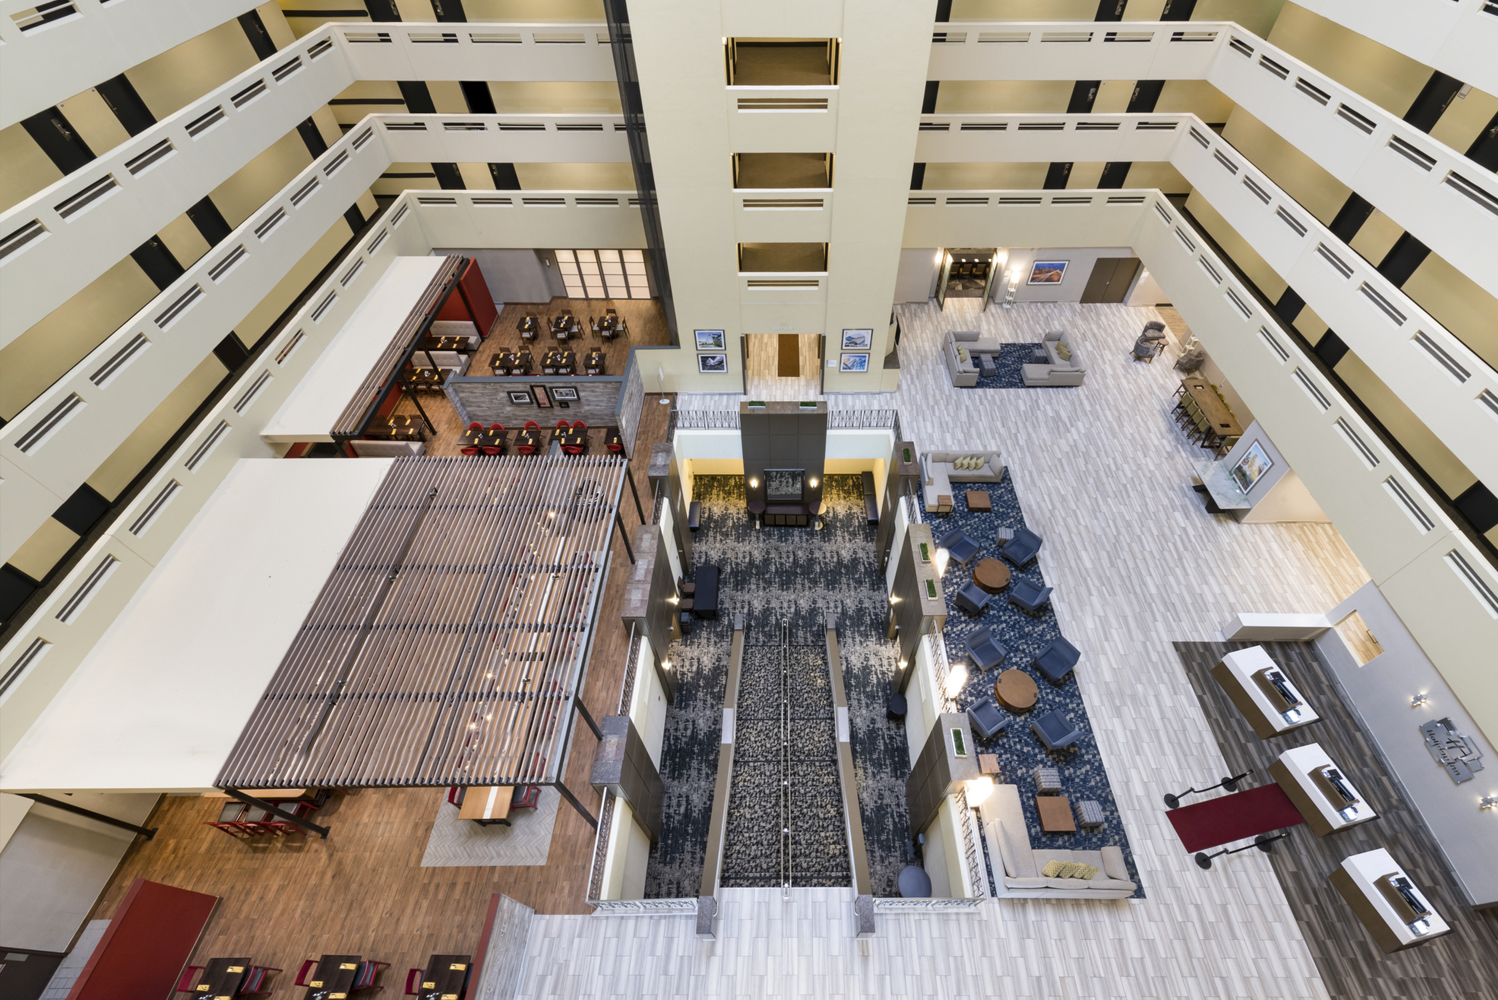 Holiday Inn Denver East - Stapleton completed a $12.8 million renovation project that began in March 2017.